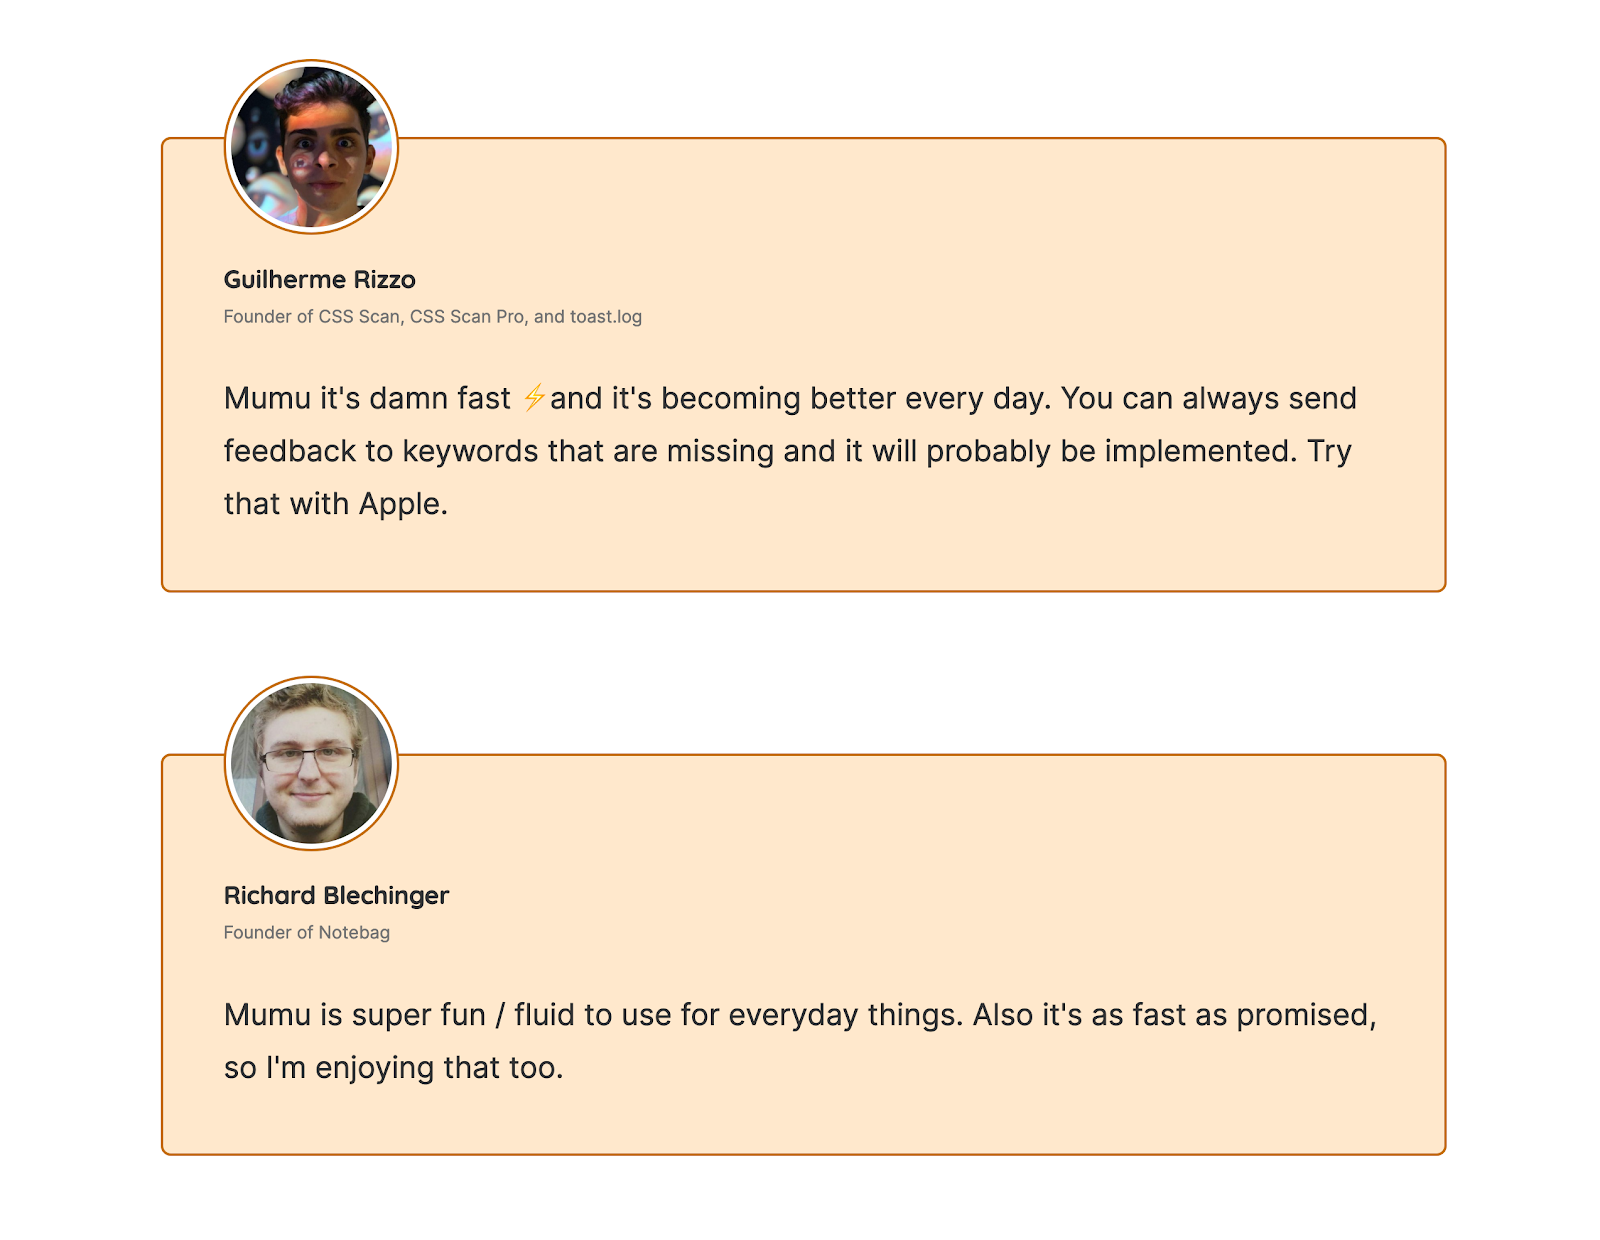 on-developing-a-better-emoji-picker-for-mac-and-getting-featured-on-product-hunt